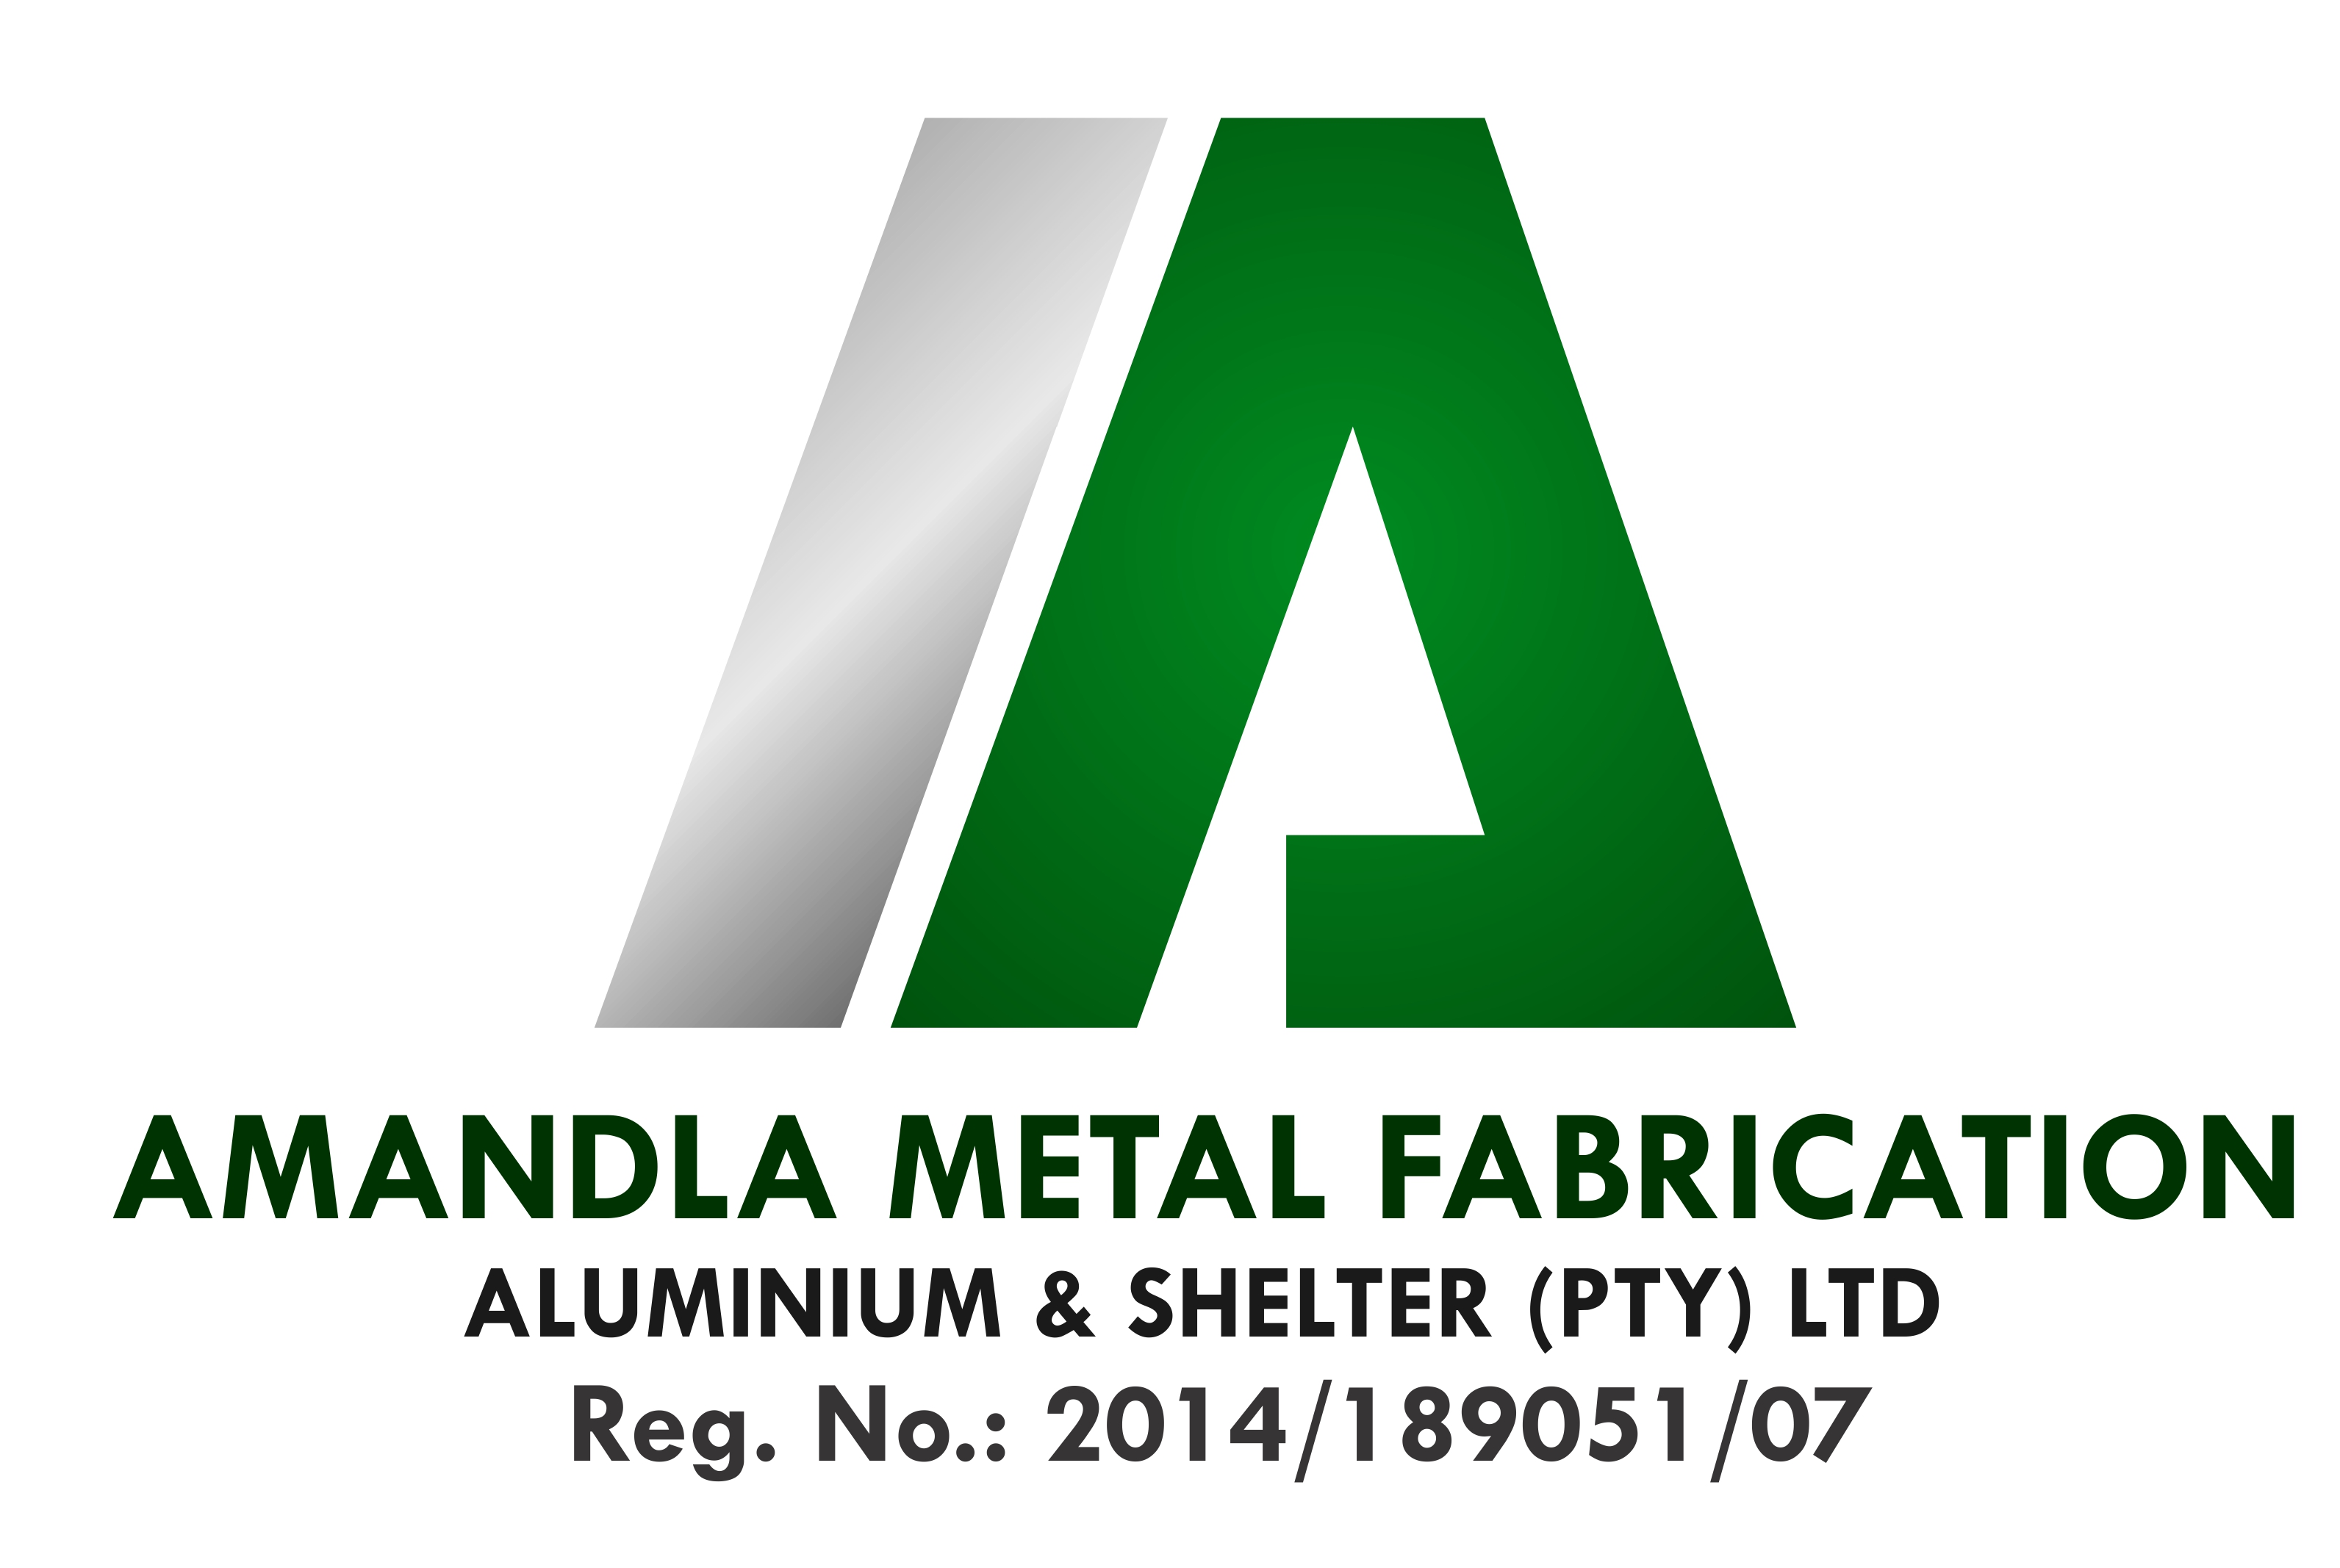 Amandla Metal Fabrication (Pty) Ltd